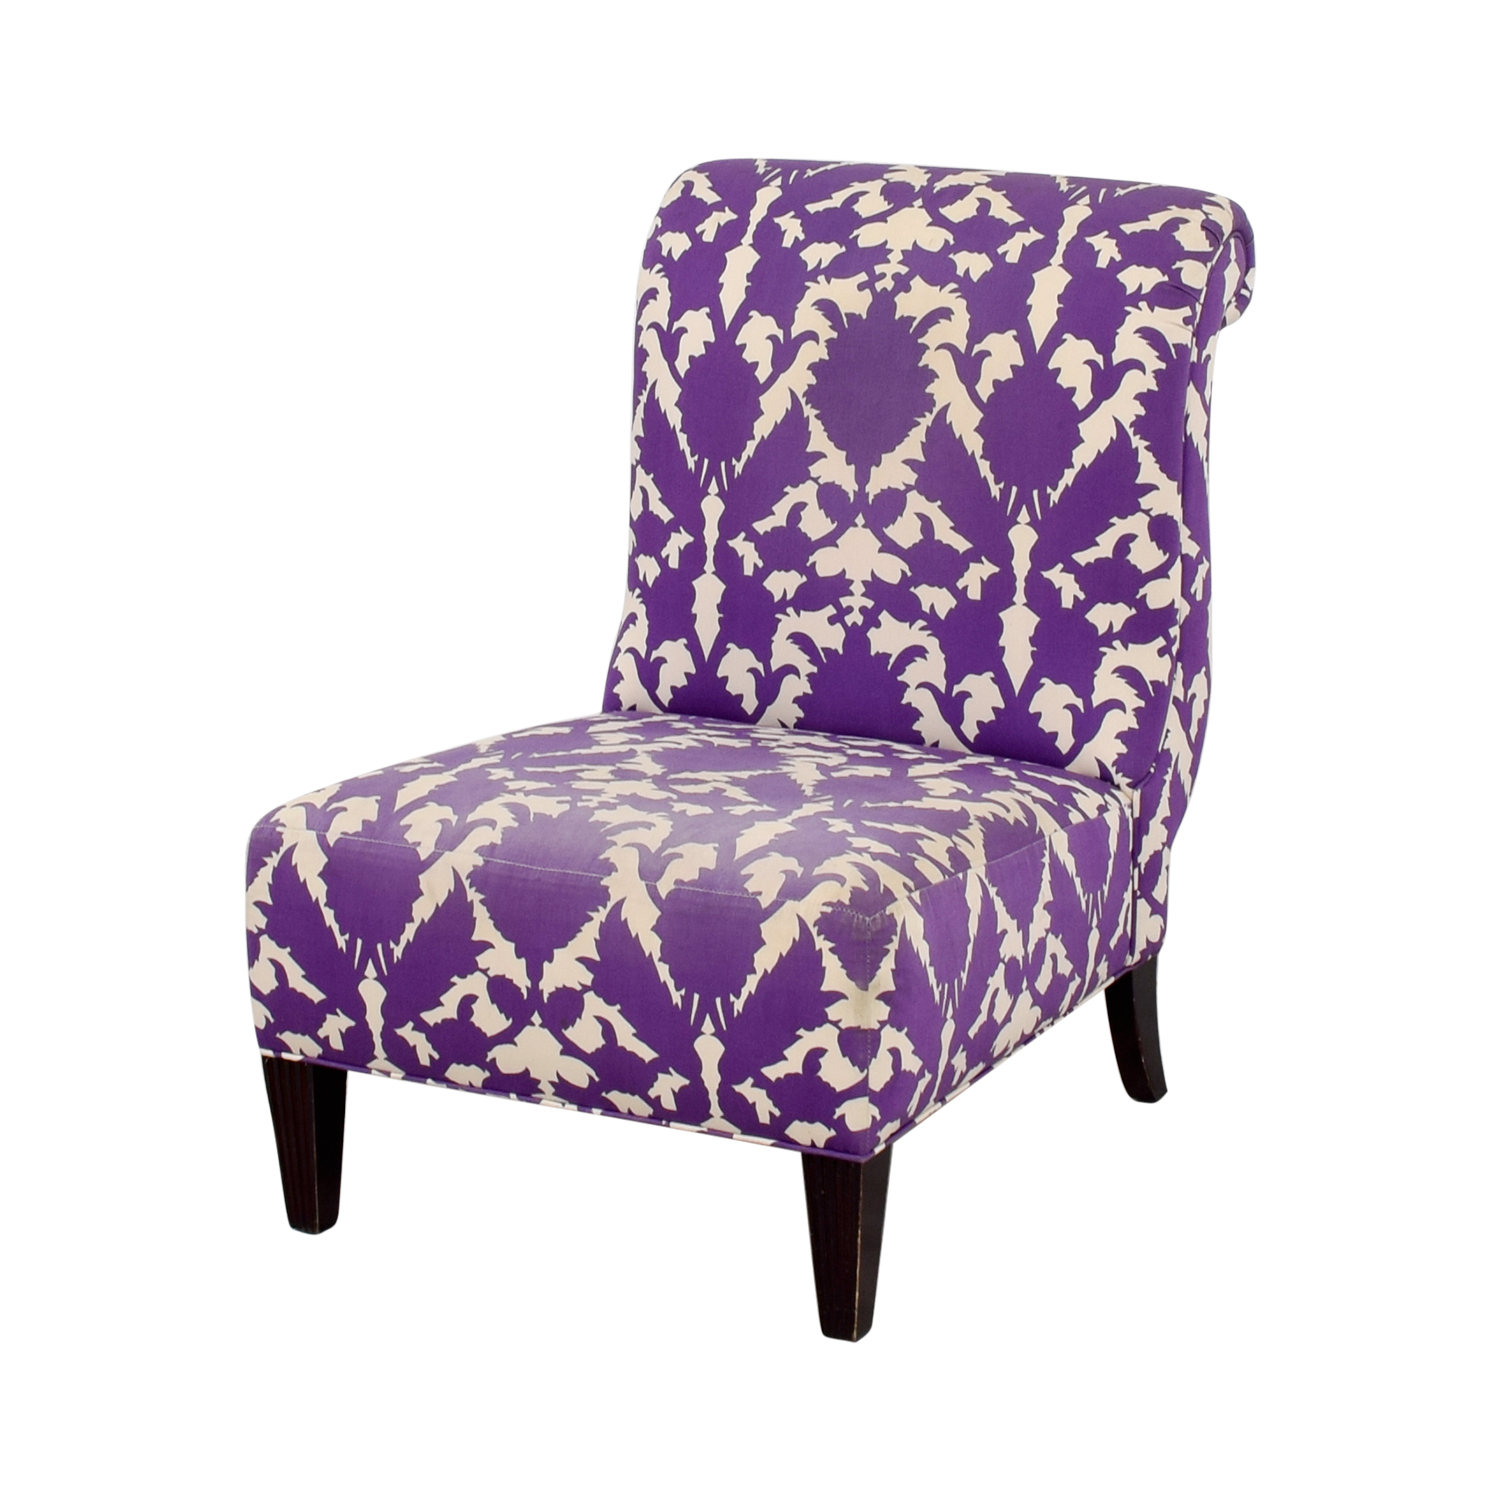 Baker Baker Madeline Weintraub Purple Accent Chair coupon